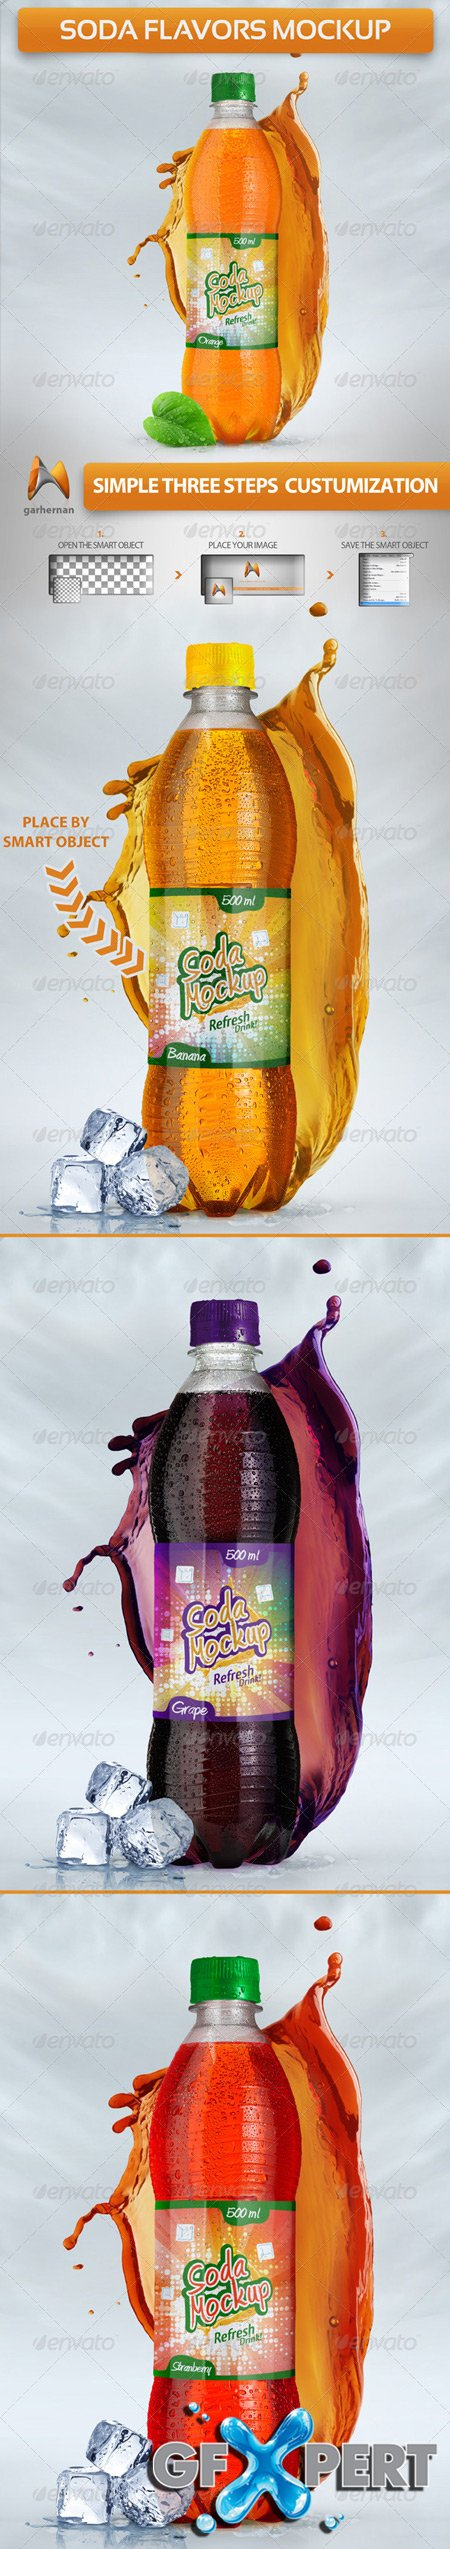 GraphicRiver Soda Flavors Mock-Up 5125032